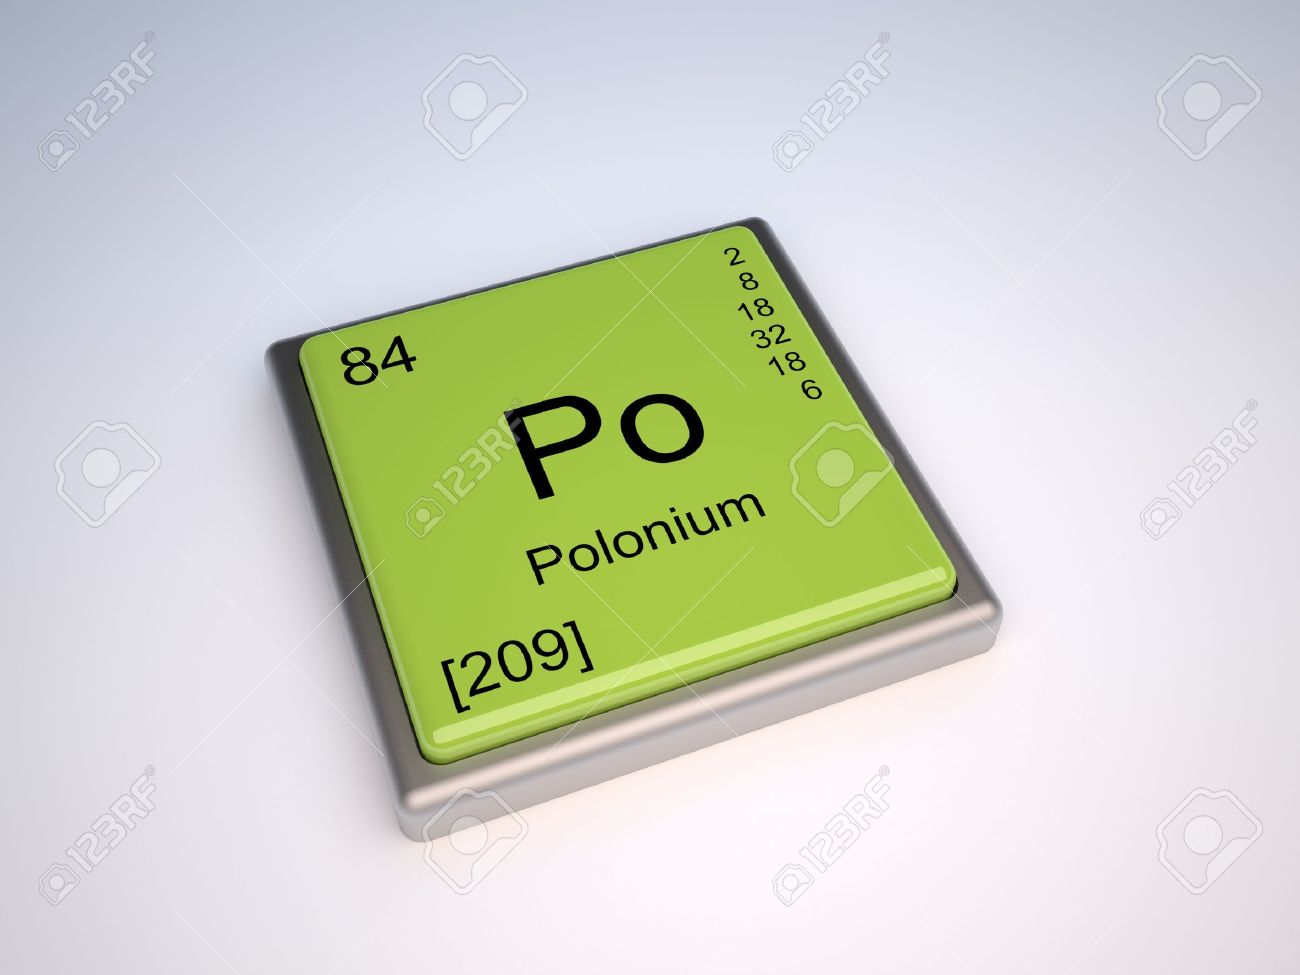 Polonium chemical element of the periodic table with symbol po polonium chemical element of the periodic table with symbol po stock photo 10062422 gamestrikefo Image collections